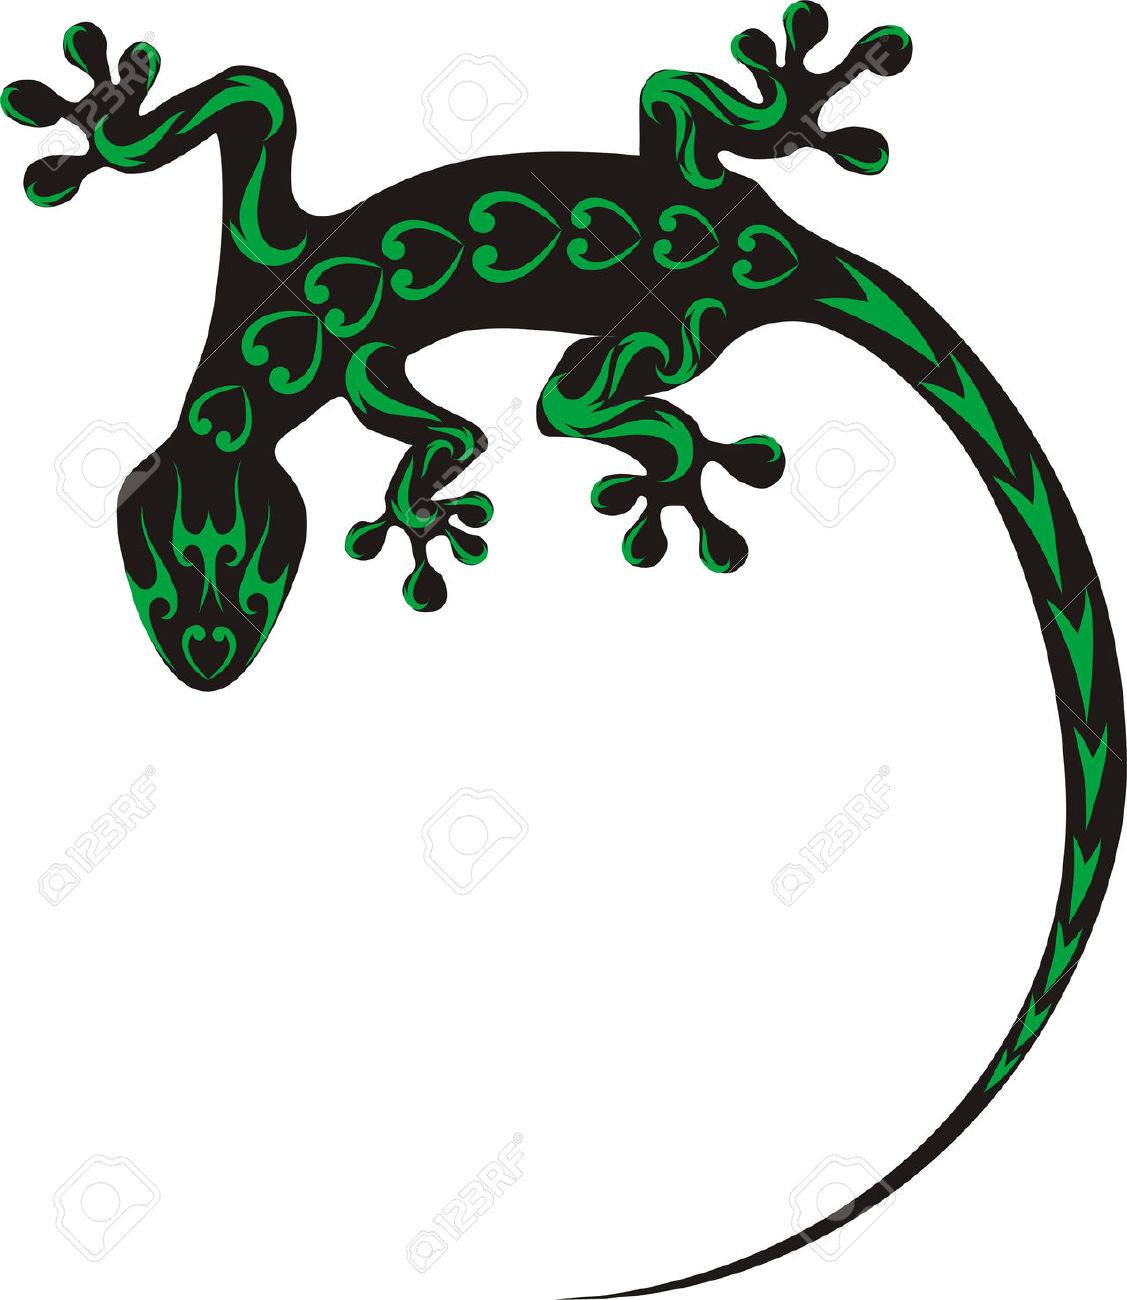 Salamander clipart #2, Download drawings